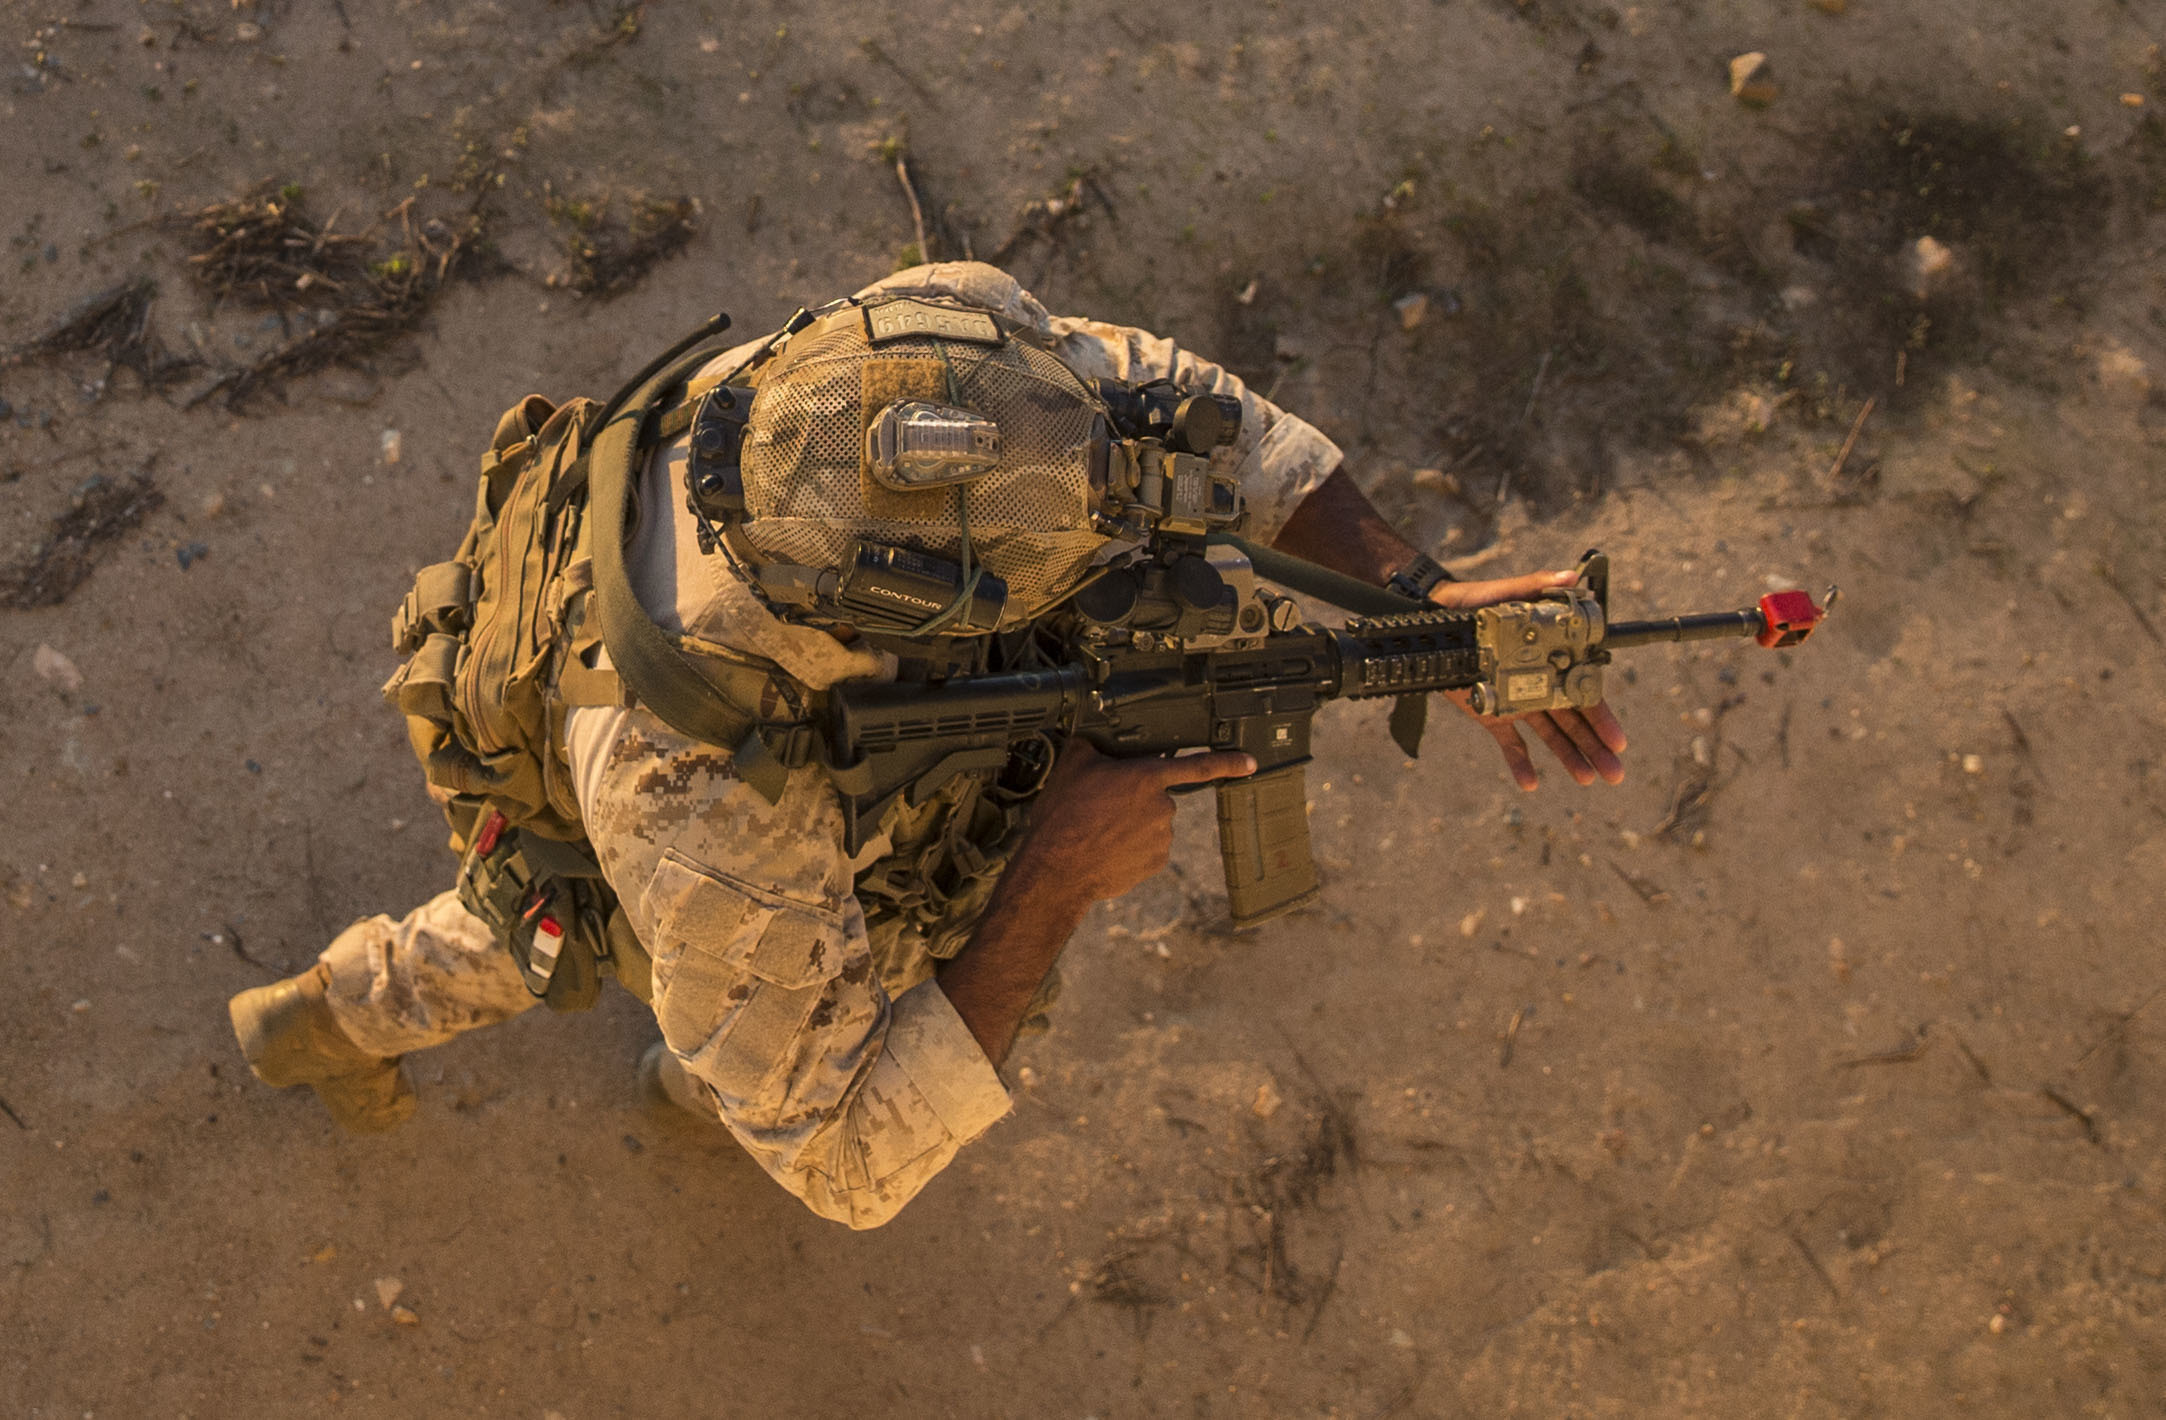 A Marine Raider conducts high-value target detainment and evacuation operations during a multipurpose canine handler training course hosted by 1st Marine Raider Battalion on Marine Corps Base Camp Pendleton, Calif,, Dec. 19, 2019. (Lance Cpl. Angela Wilcox/Marine Corps)